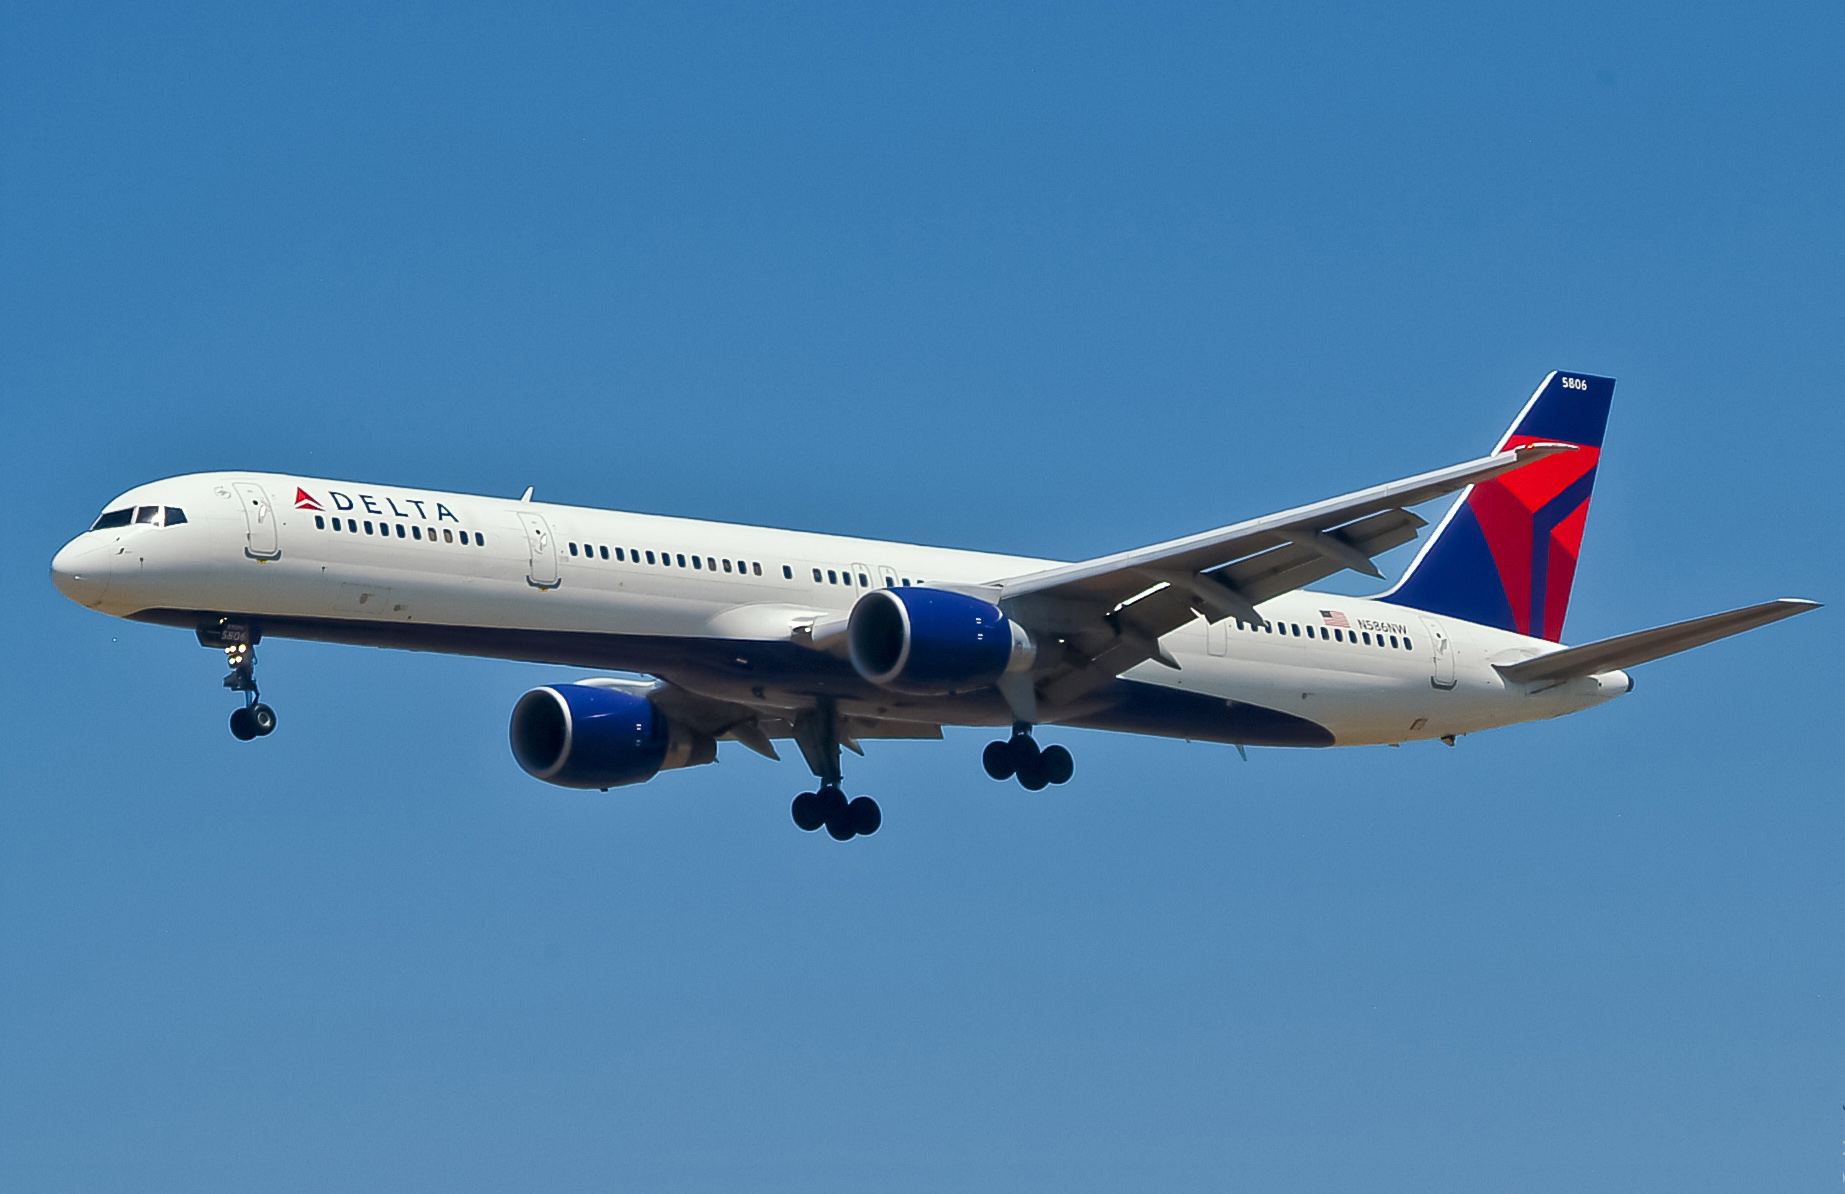 How F 16 Fighter Pilot Tried To Stop 9/11 By Sacrificing Her Own Life Delta Air Lines B757 351 N586NW LAX